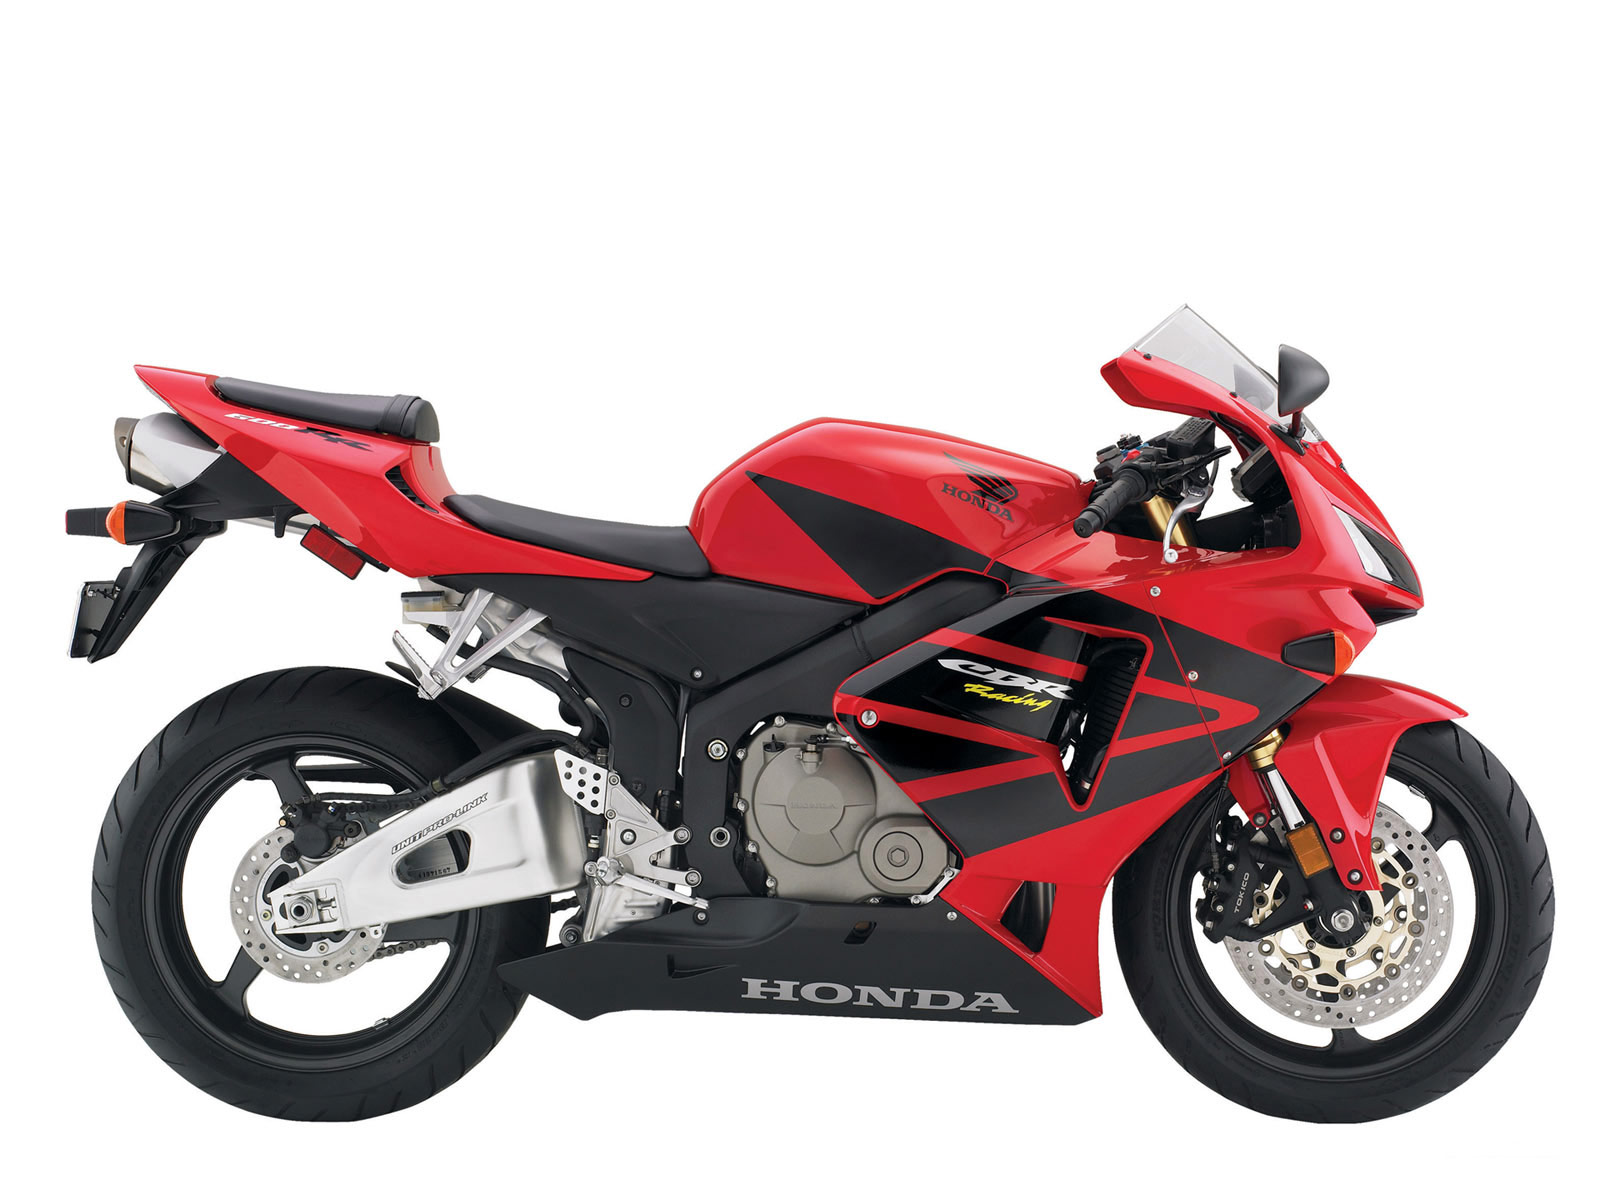 Honda Cbr 600 Rr 2006 Wallpapers Specs